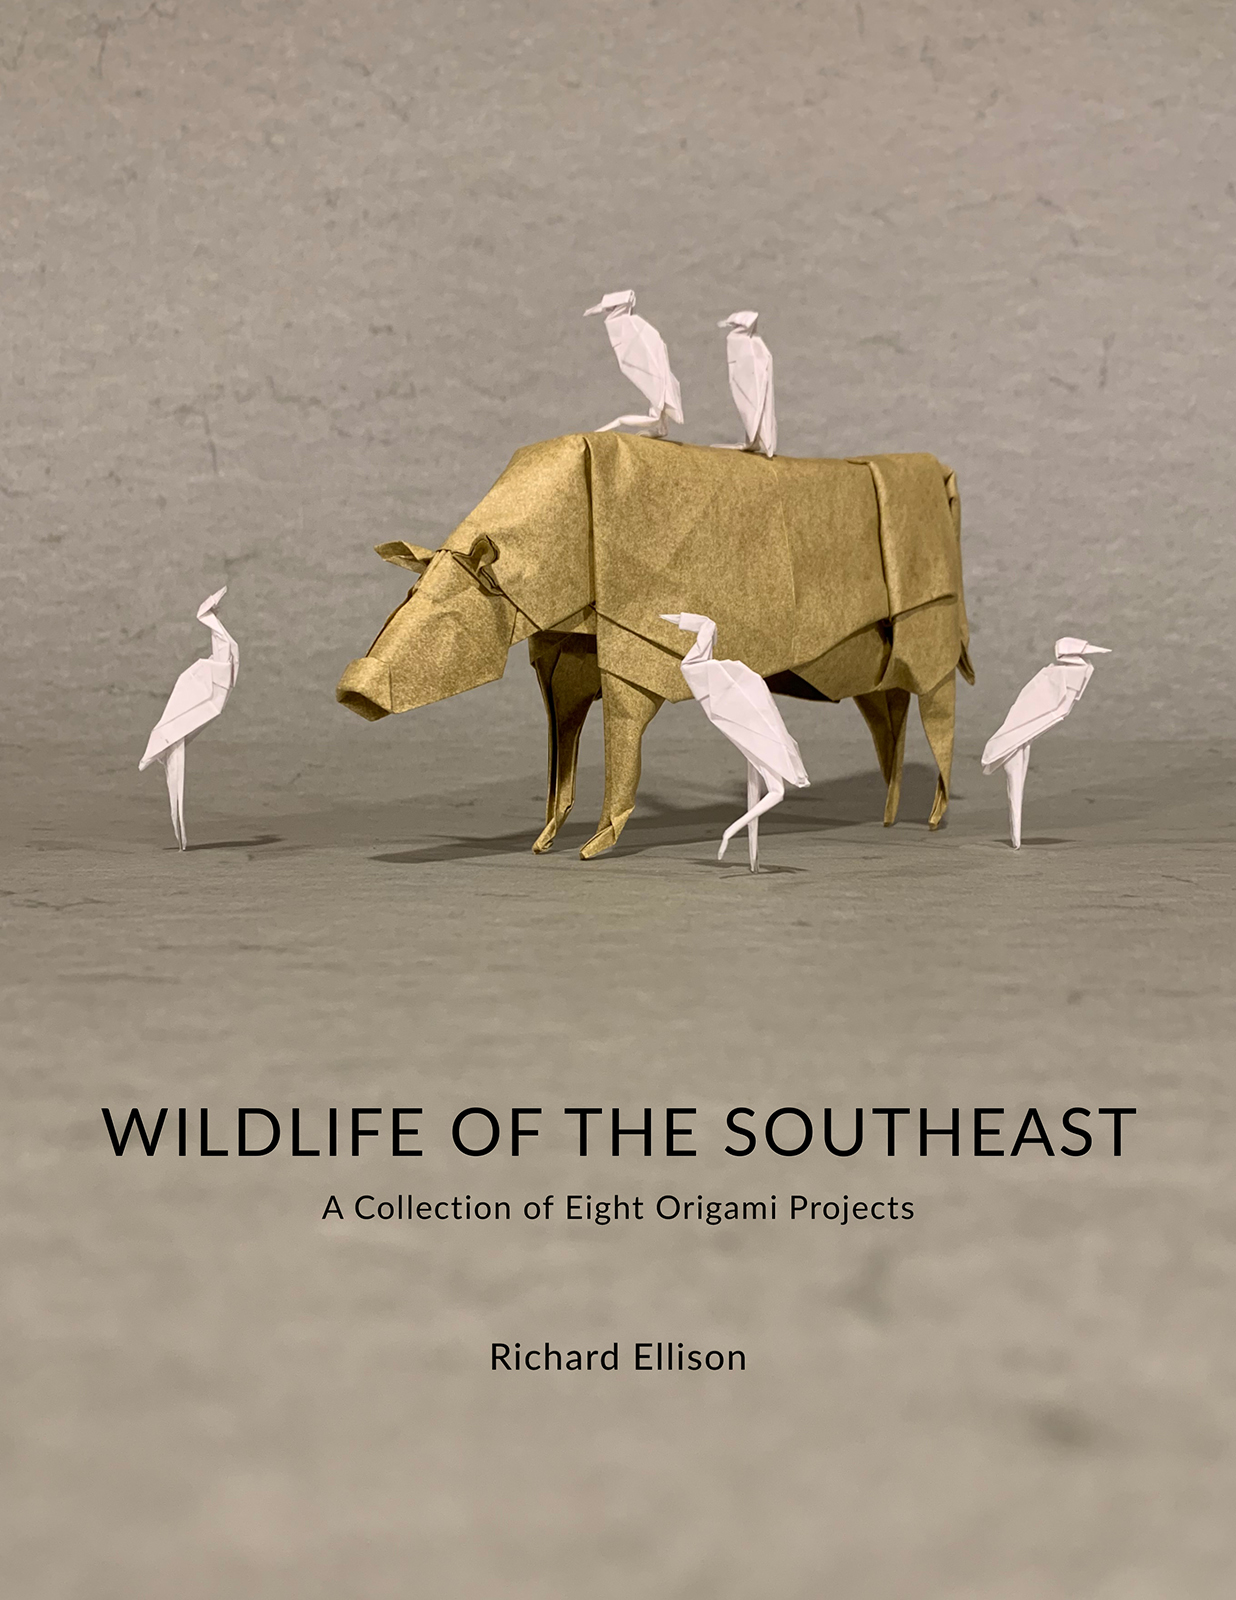 Wildlife of the Southeast: A Collection of Eight Origami Projects : page 57.